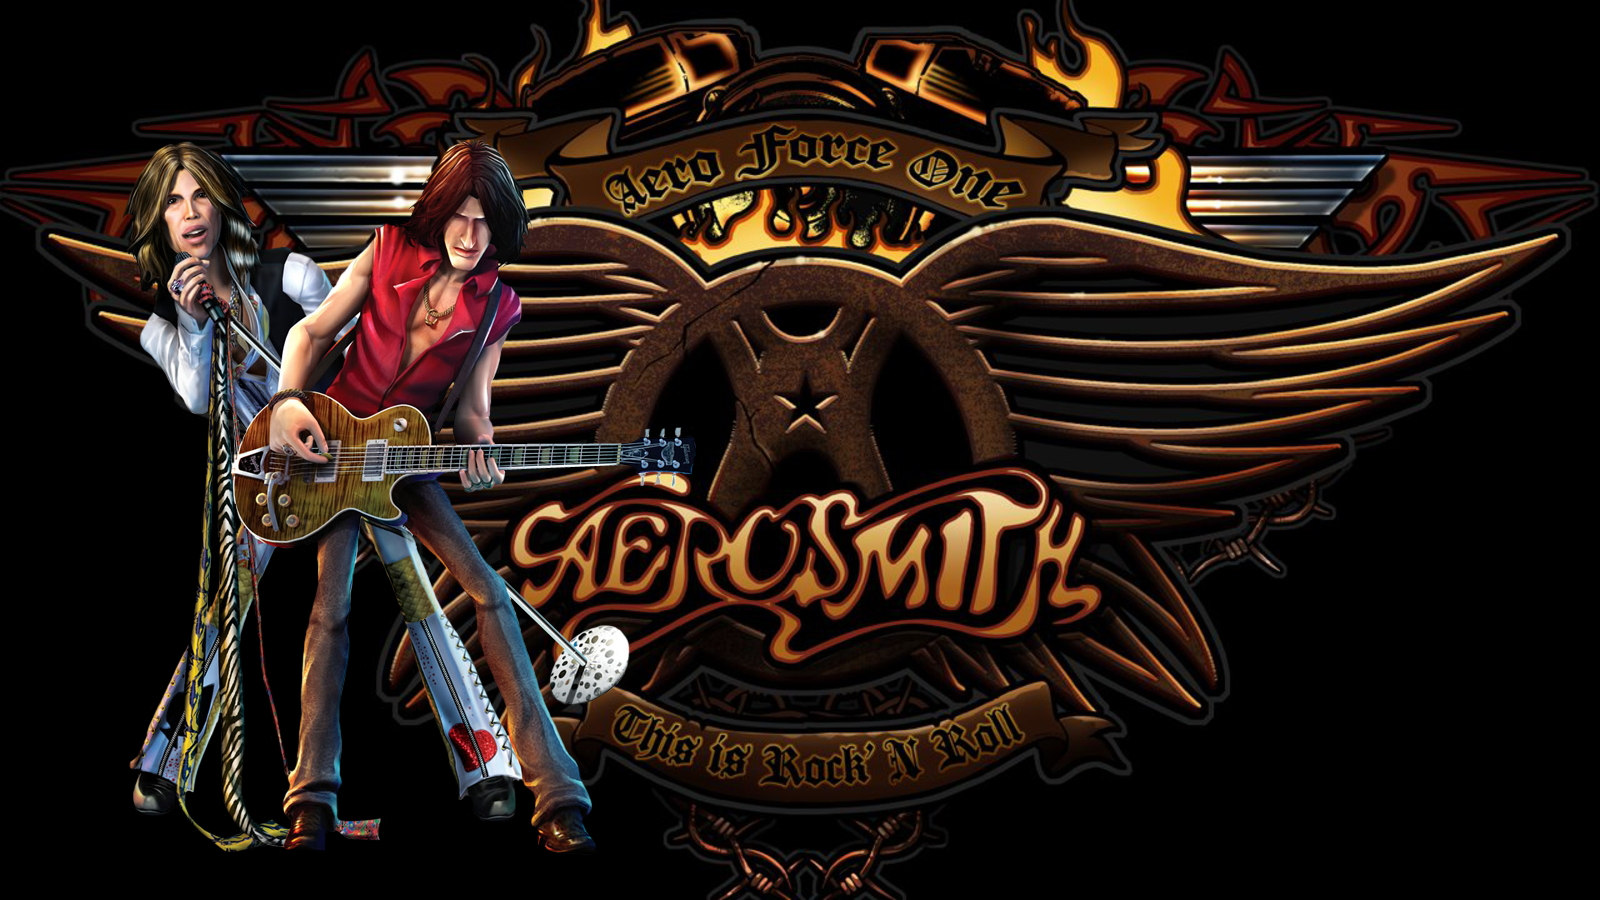 Aerosmith wallpaper download